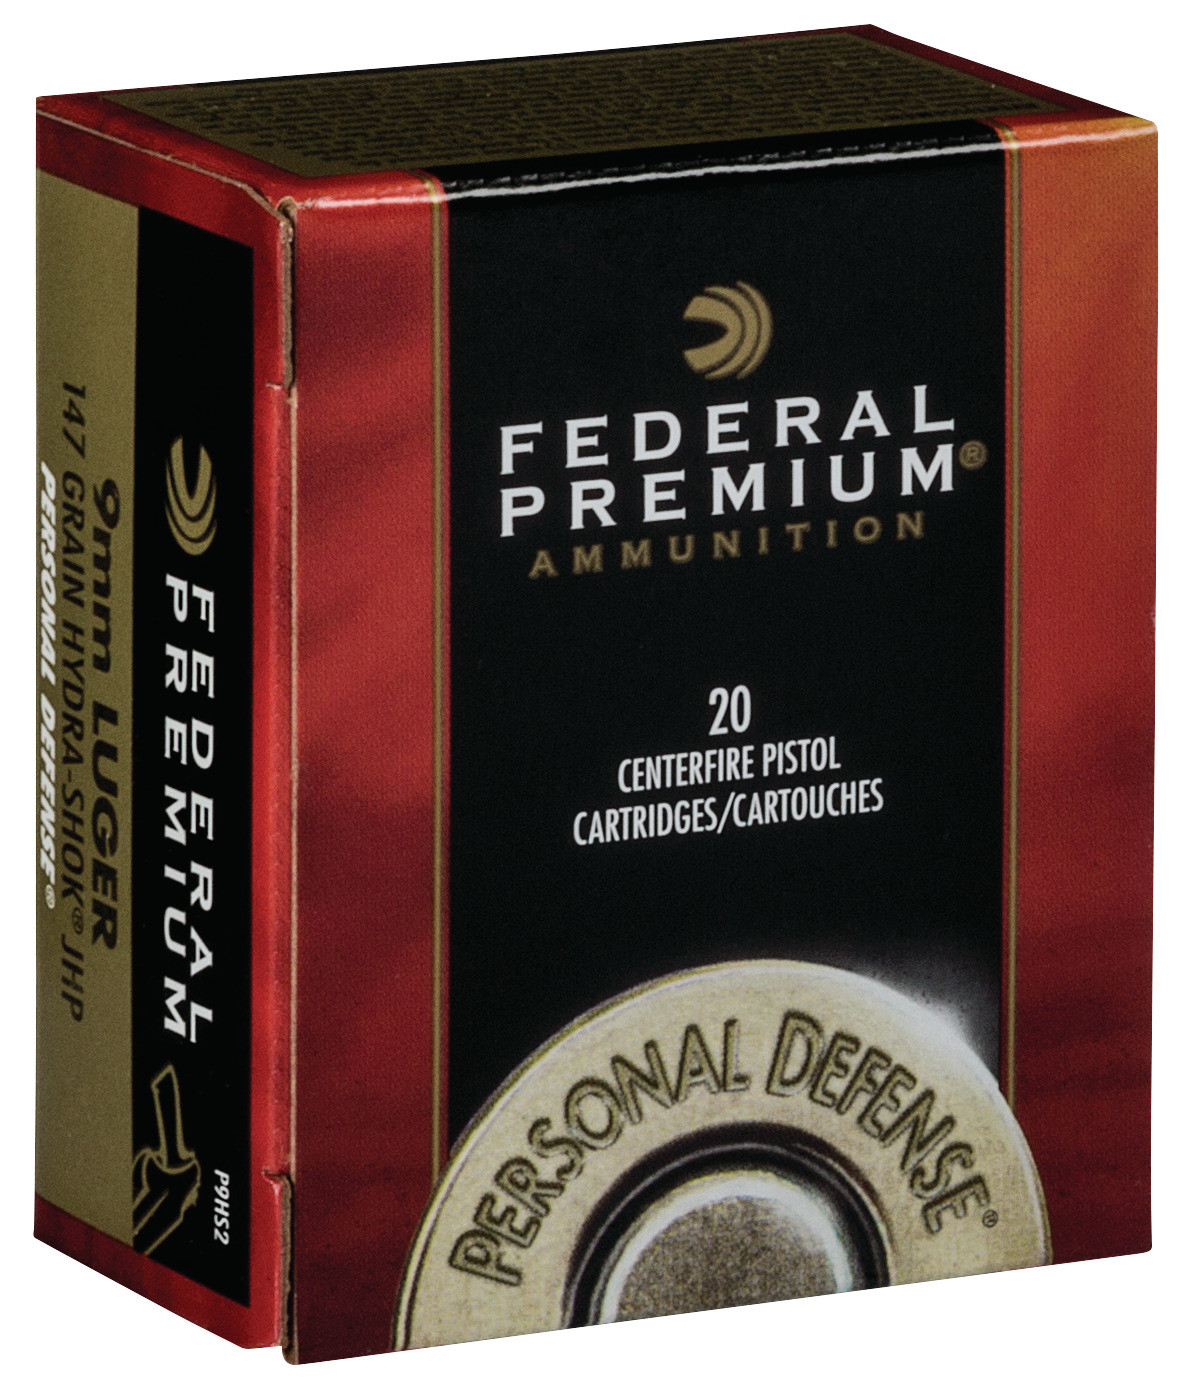 Federal Premium Personal Defense Ammunition 9mm Luger 147 Grain Hydra-Shok Jacketed Hollow Point Per 20